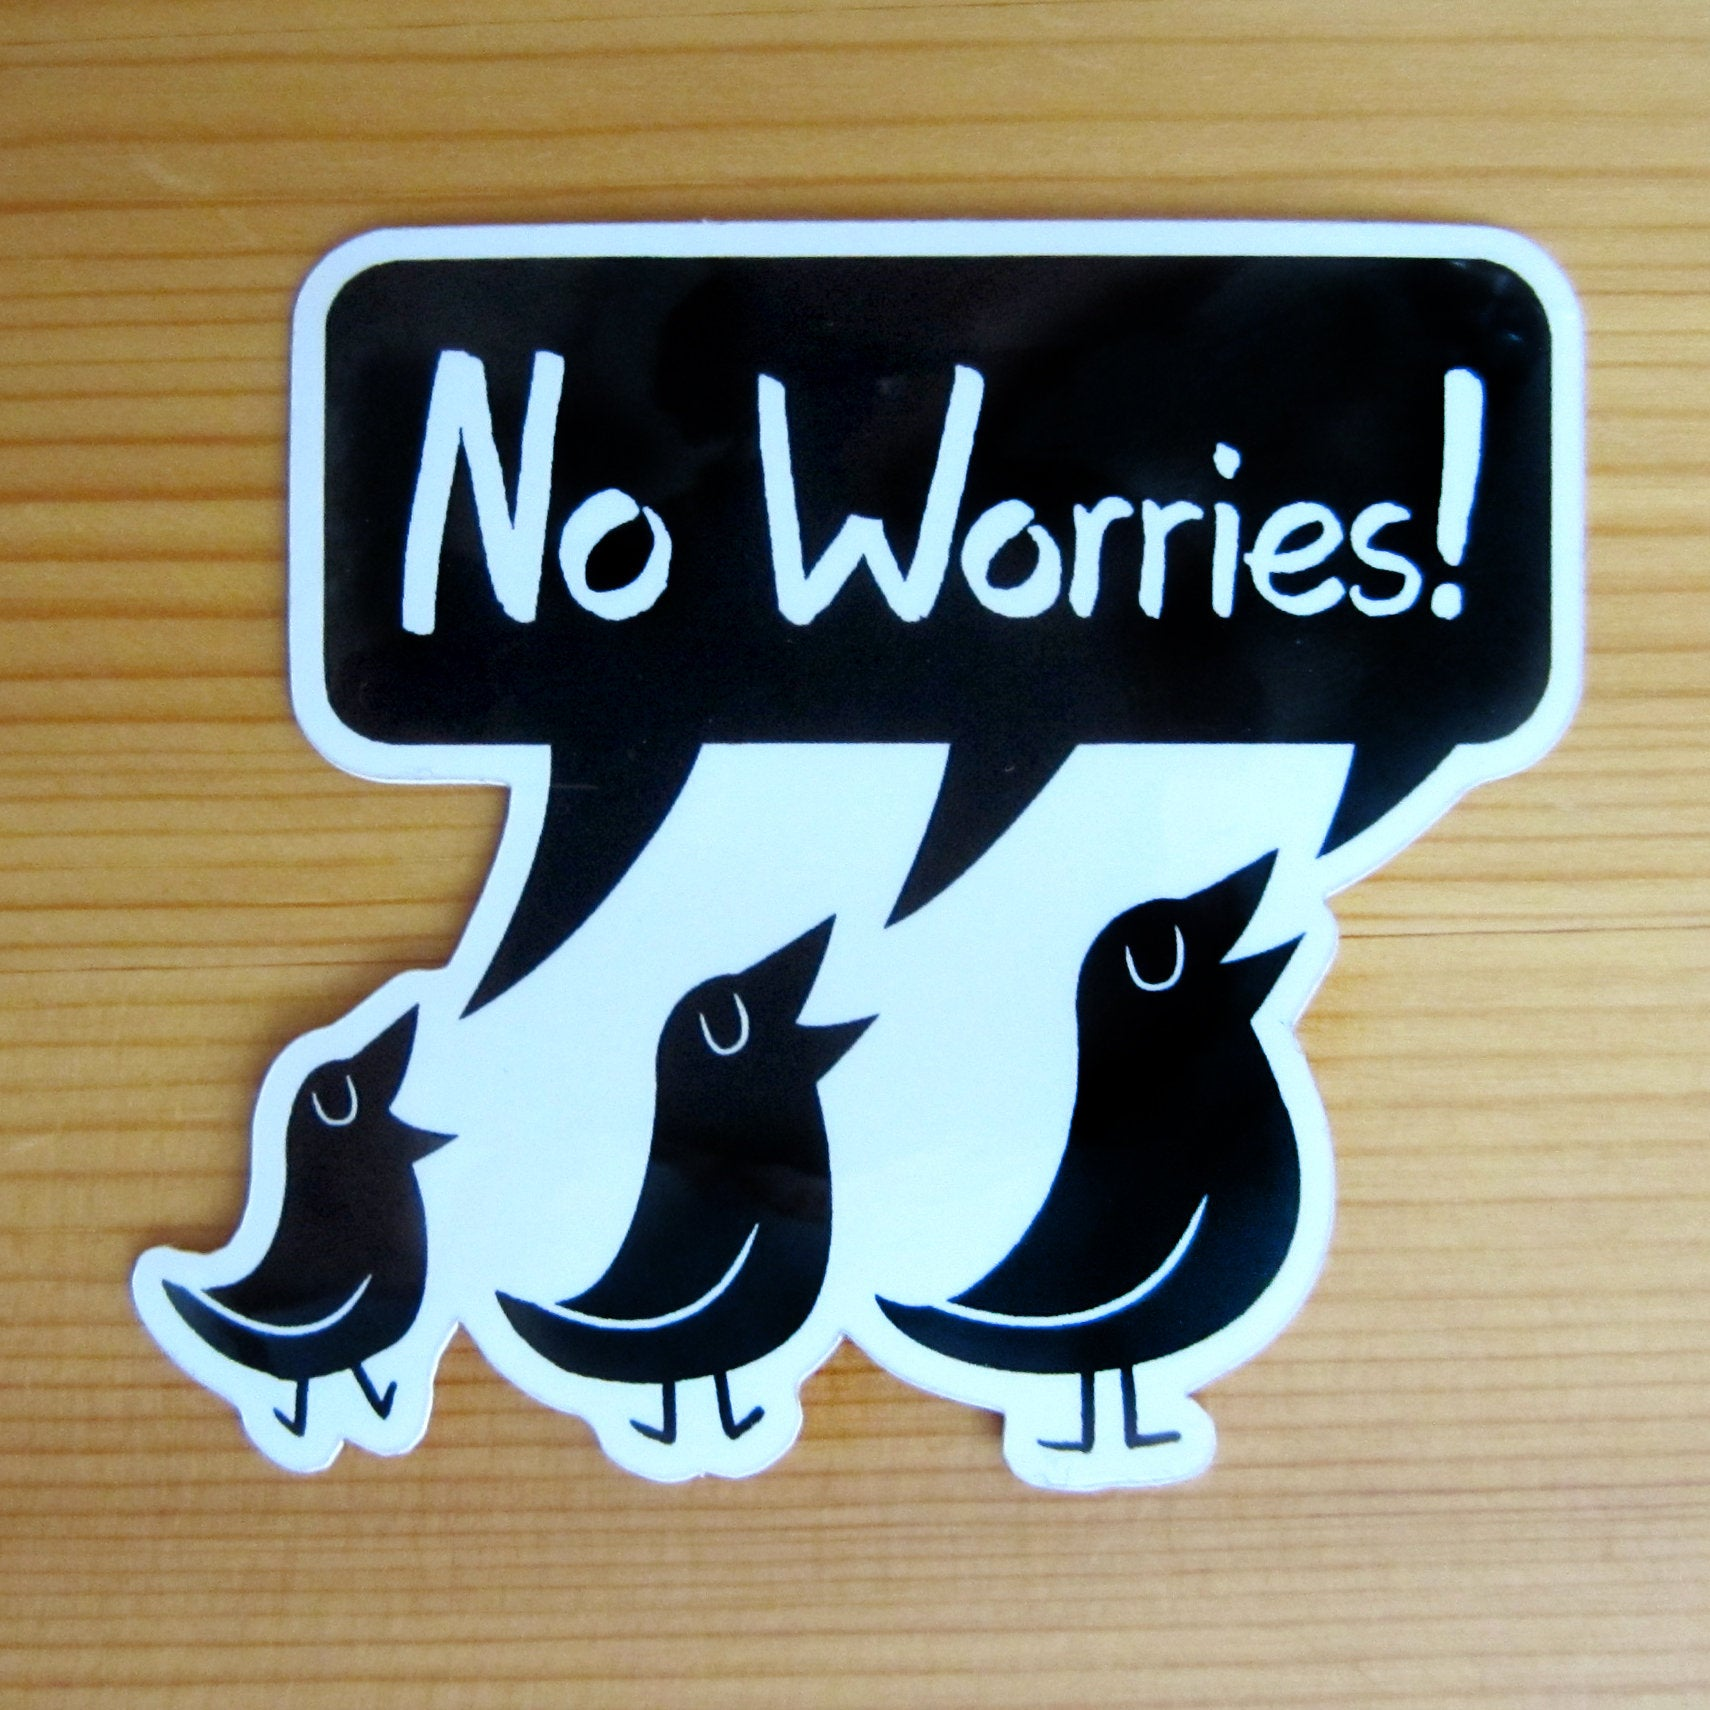 Three Little Birds, No Worries! Glossy Vinyl Sticker